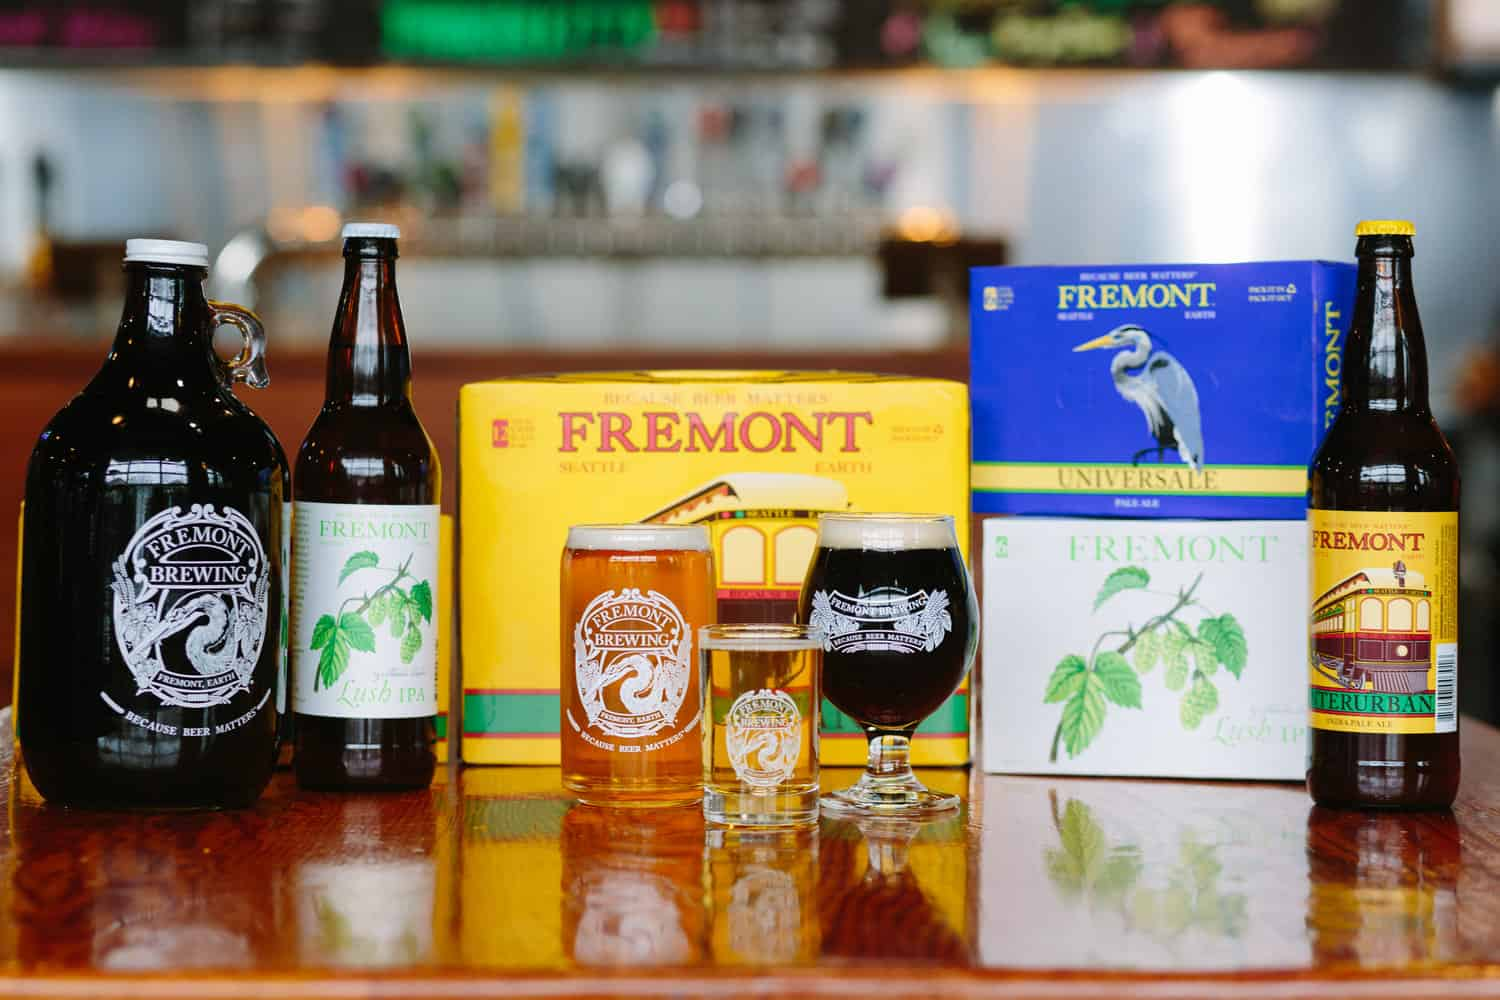 Fremont Brewing Products